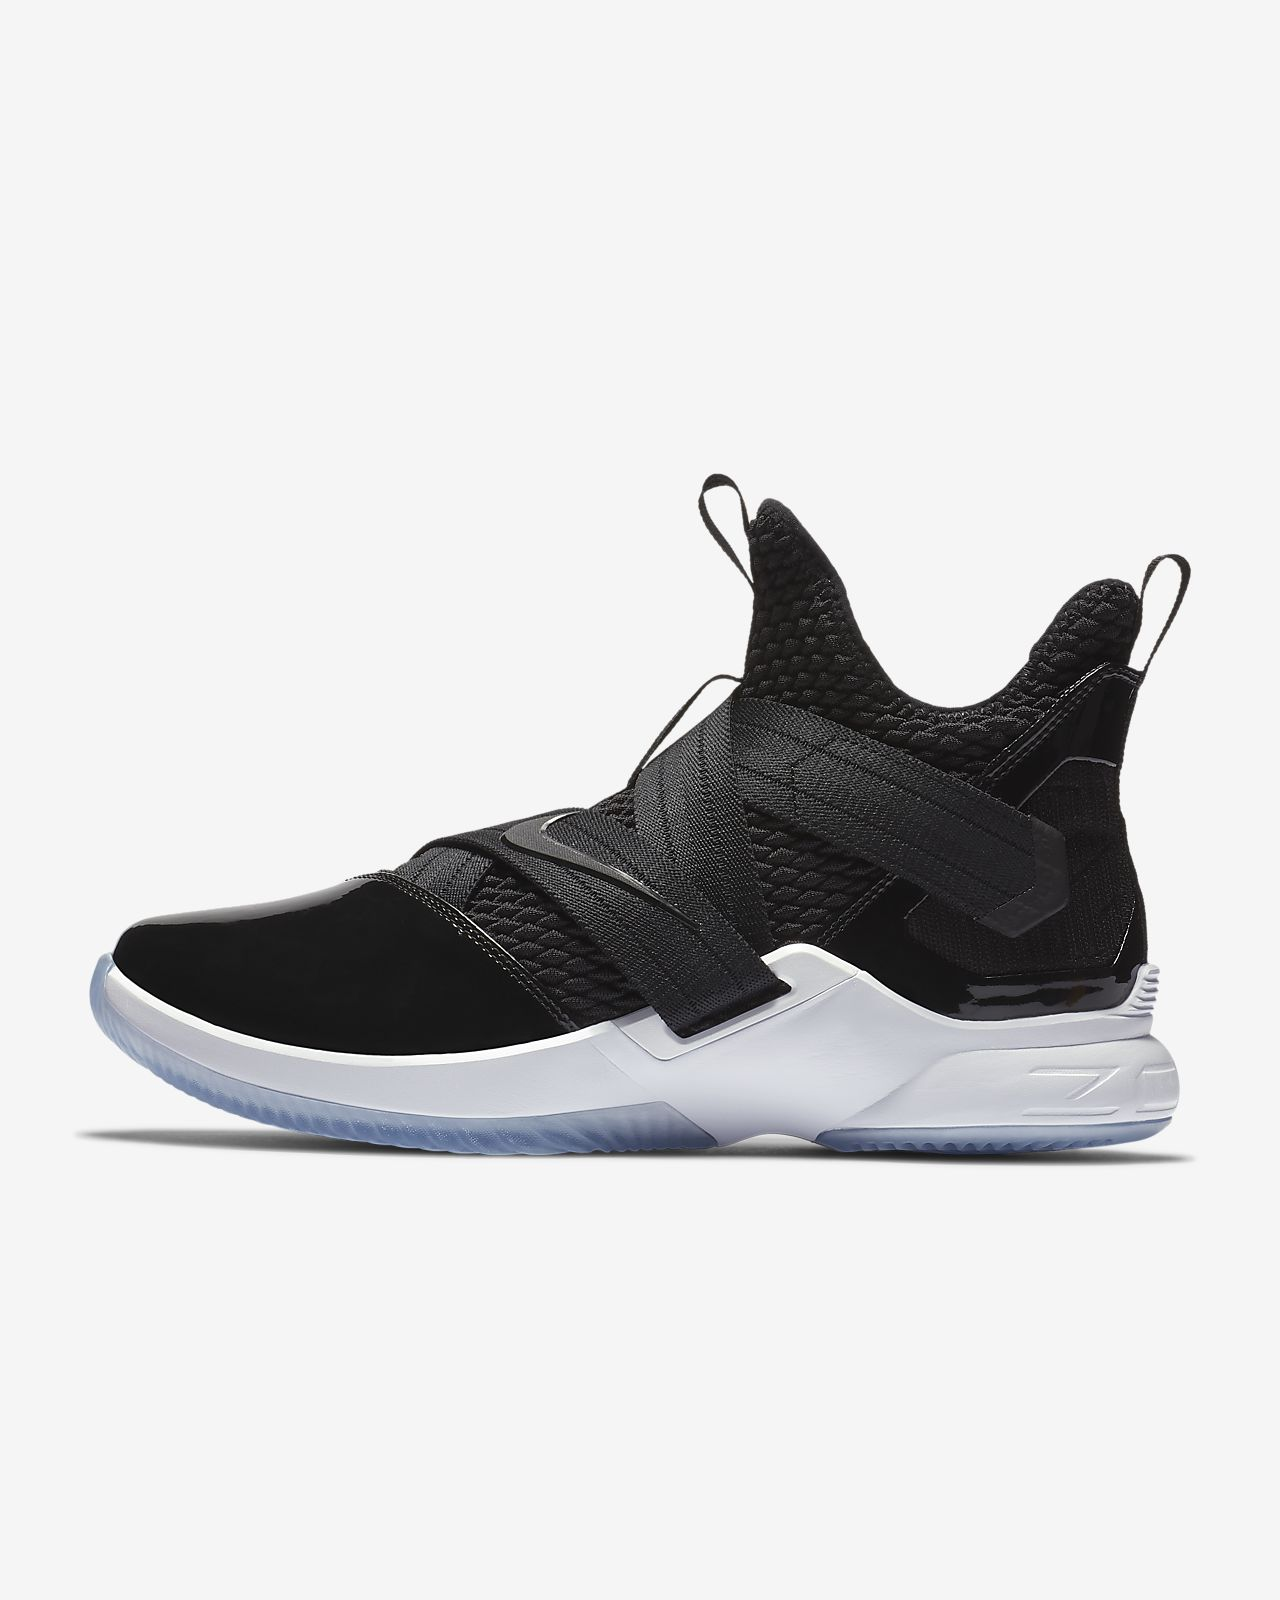 online retailer e7a8a 437be Low Resolution LeBron Soldier 12 SFG Basketball Shoe LeBron Soldier 12 SFG  Basketball Shoe